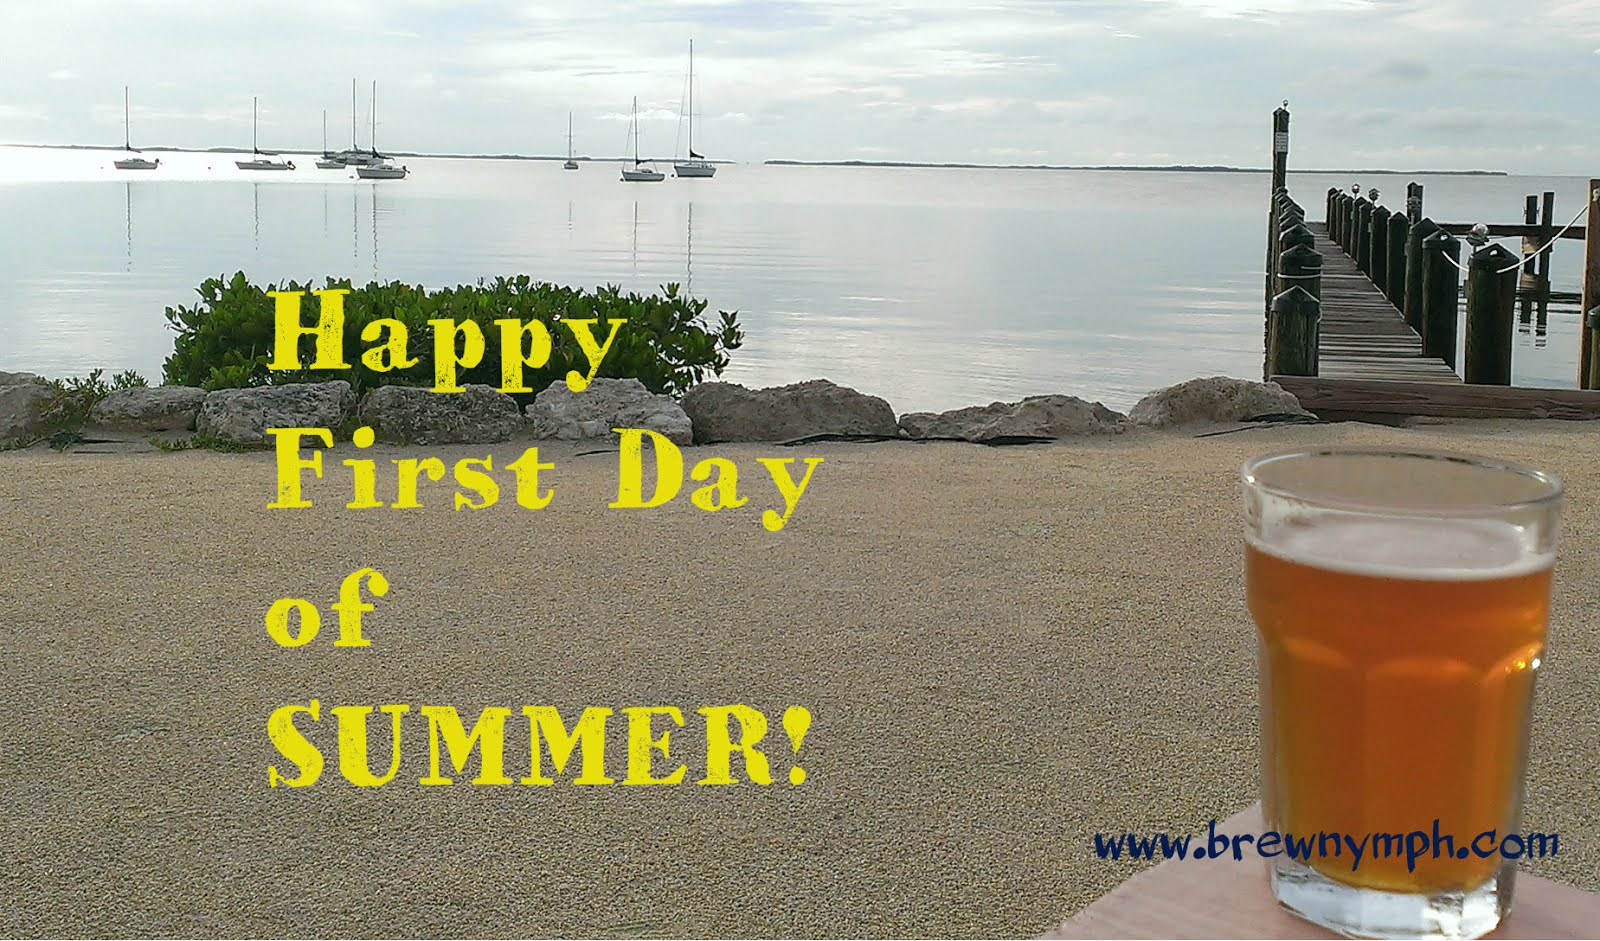 HAPPY FIRST DAY OF SUMMER! 6/21